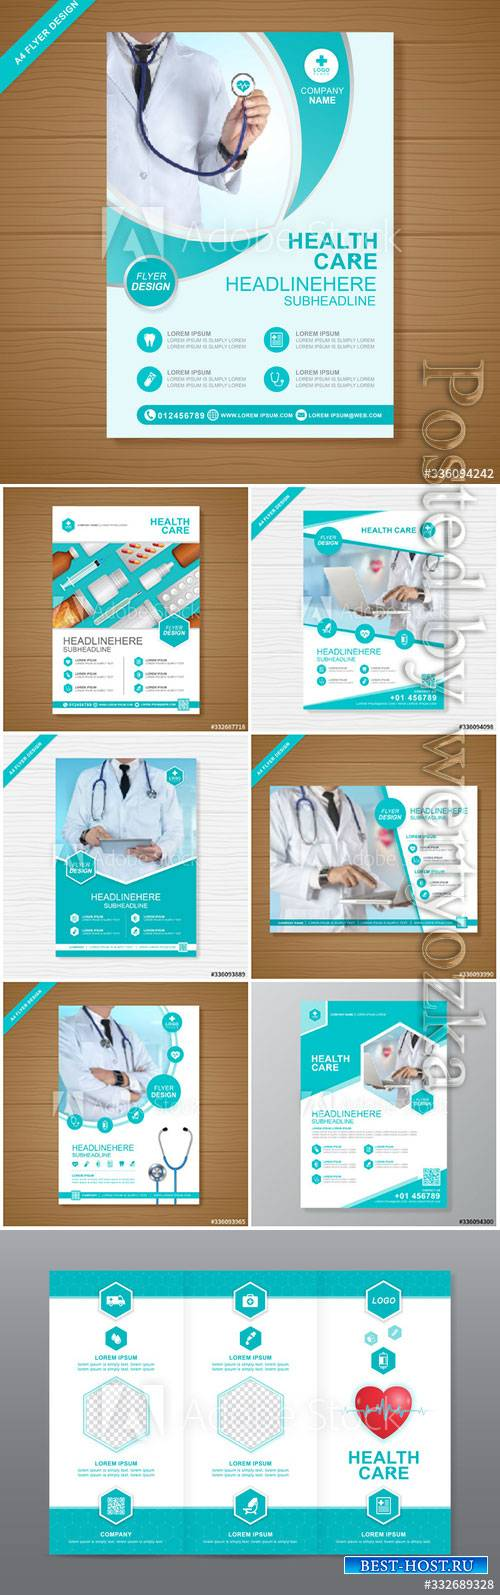 Health care cover a4 template design for a report and medical brochure